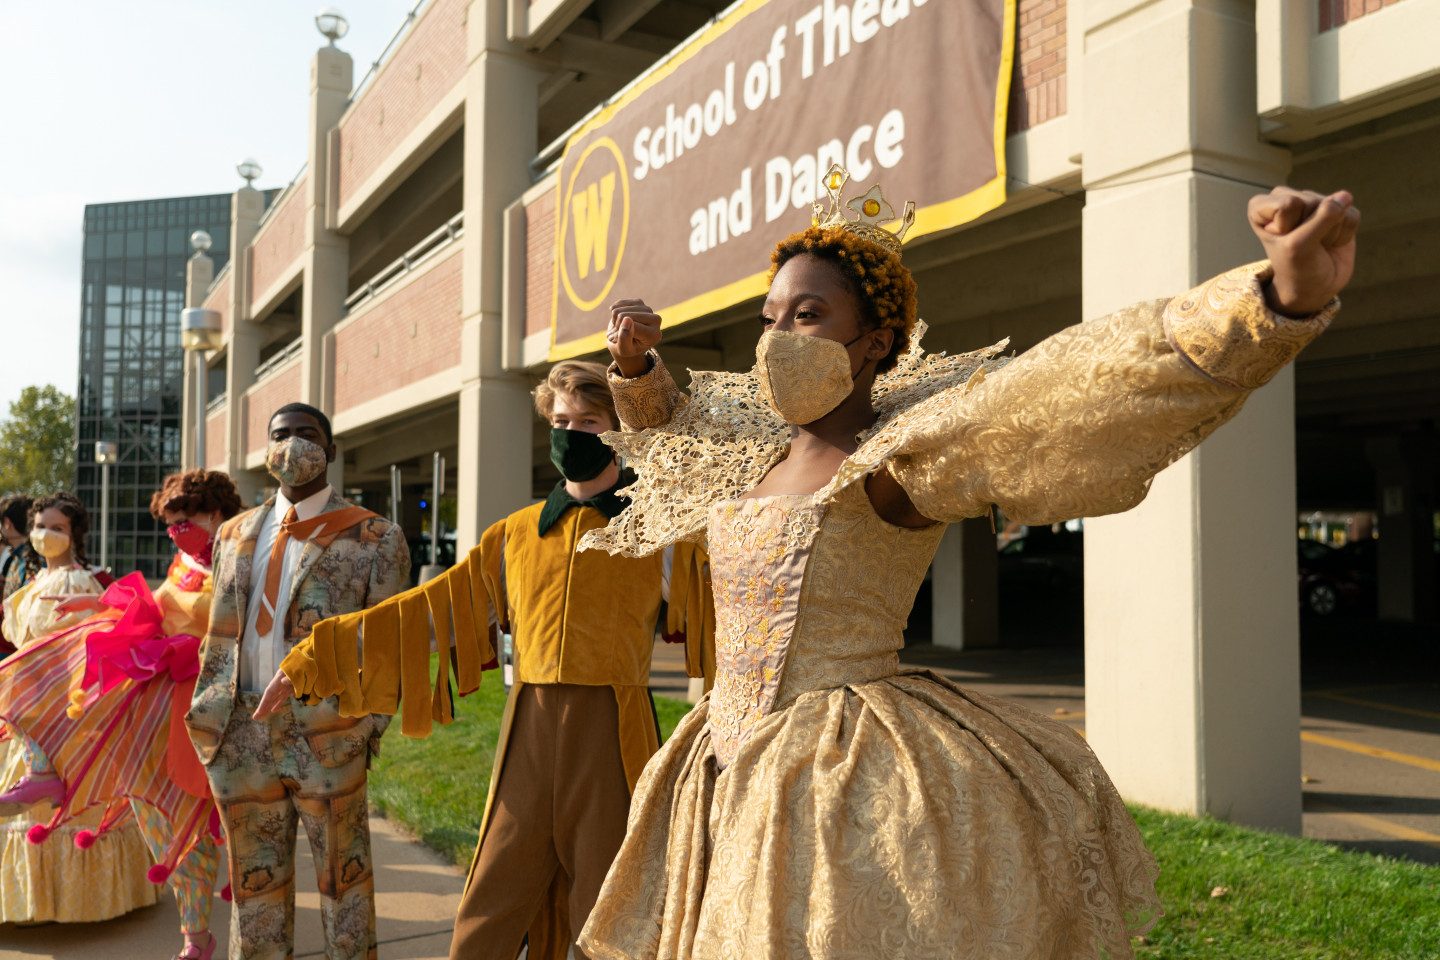 WMU Theatre students in costumes from past shows.